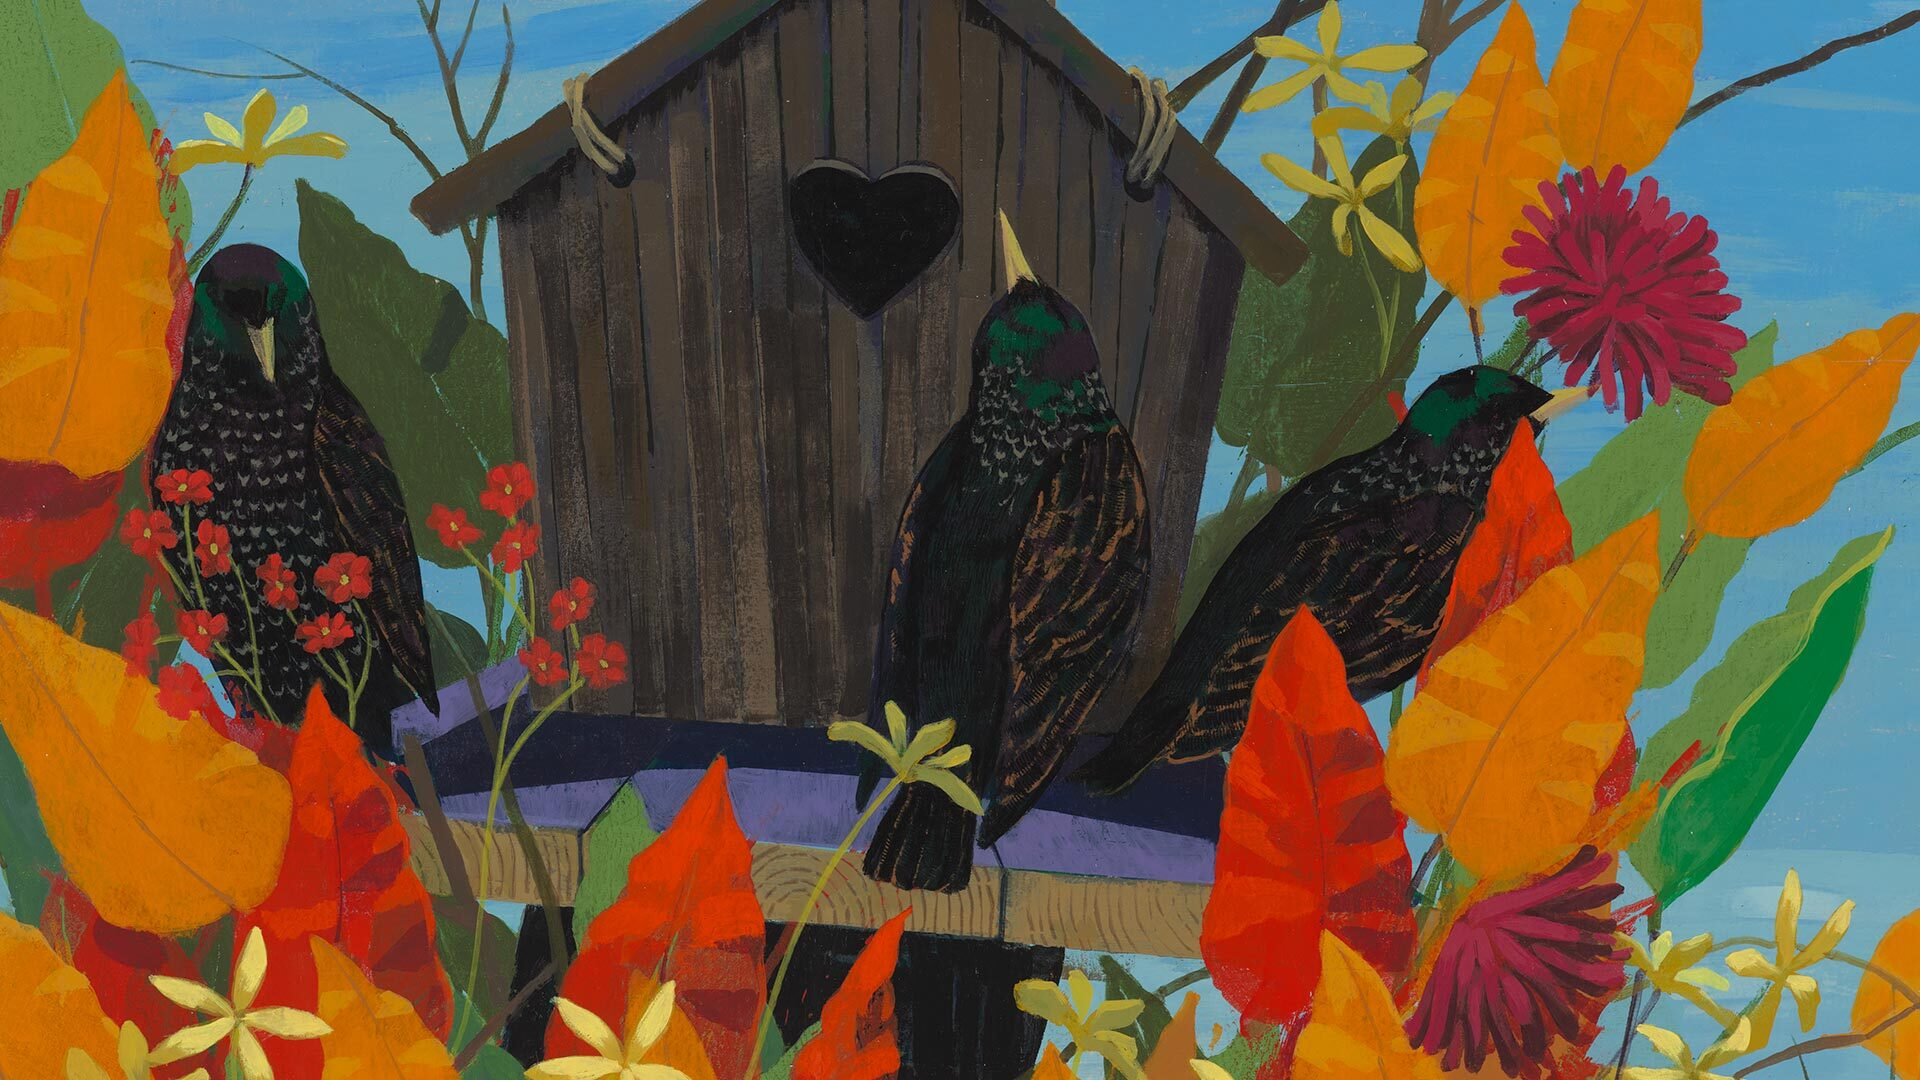 A detail from the work titled Black and Part Black Birds in America: (European Starlings) by Kerry James Marshall, dated 2021